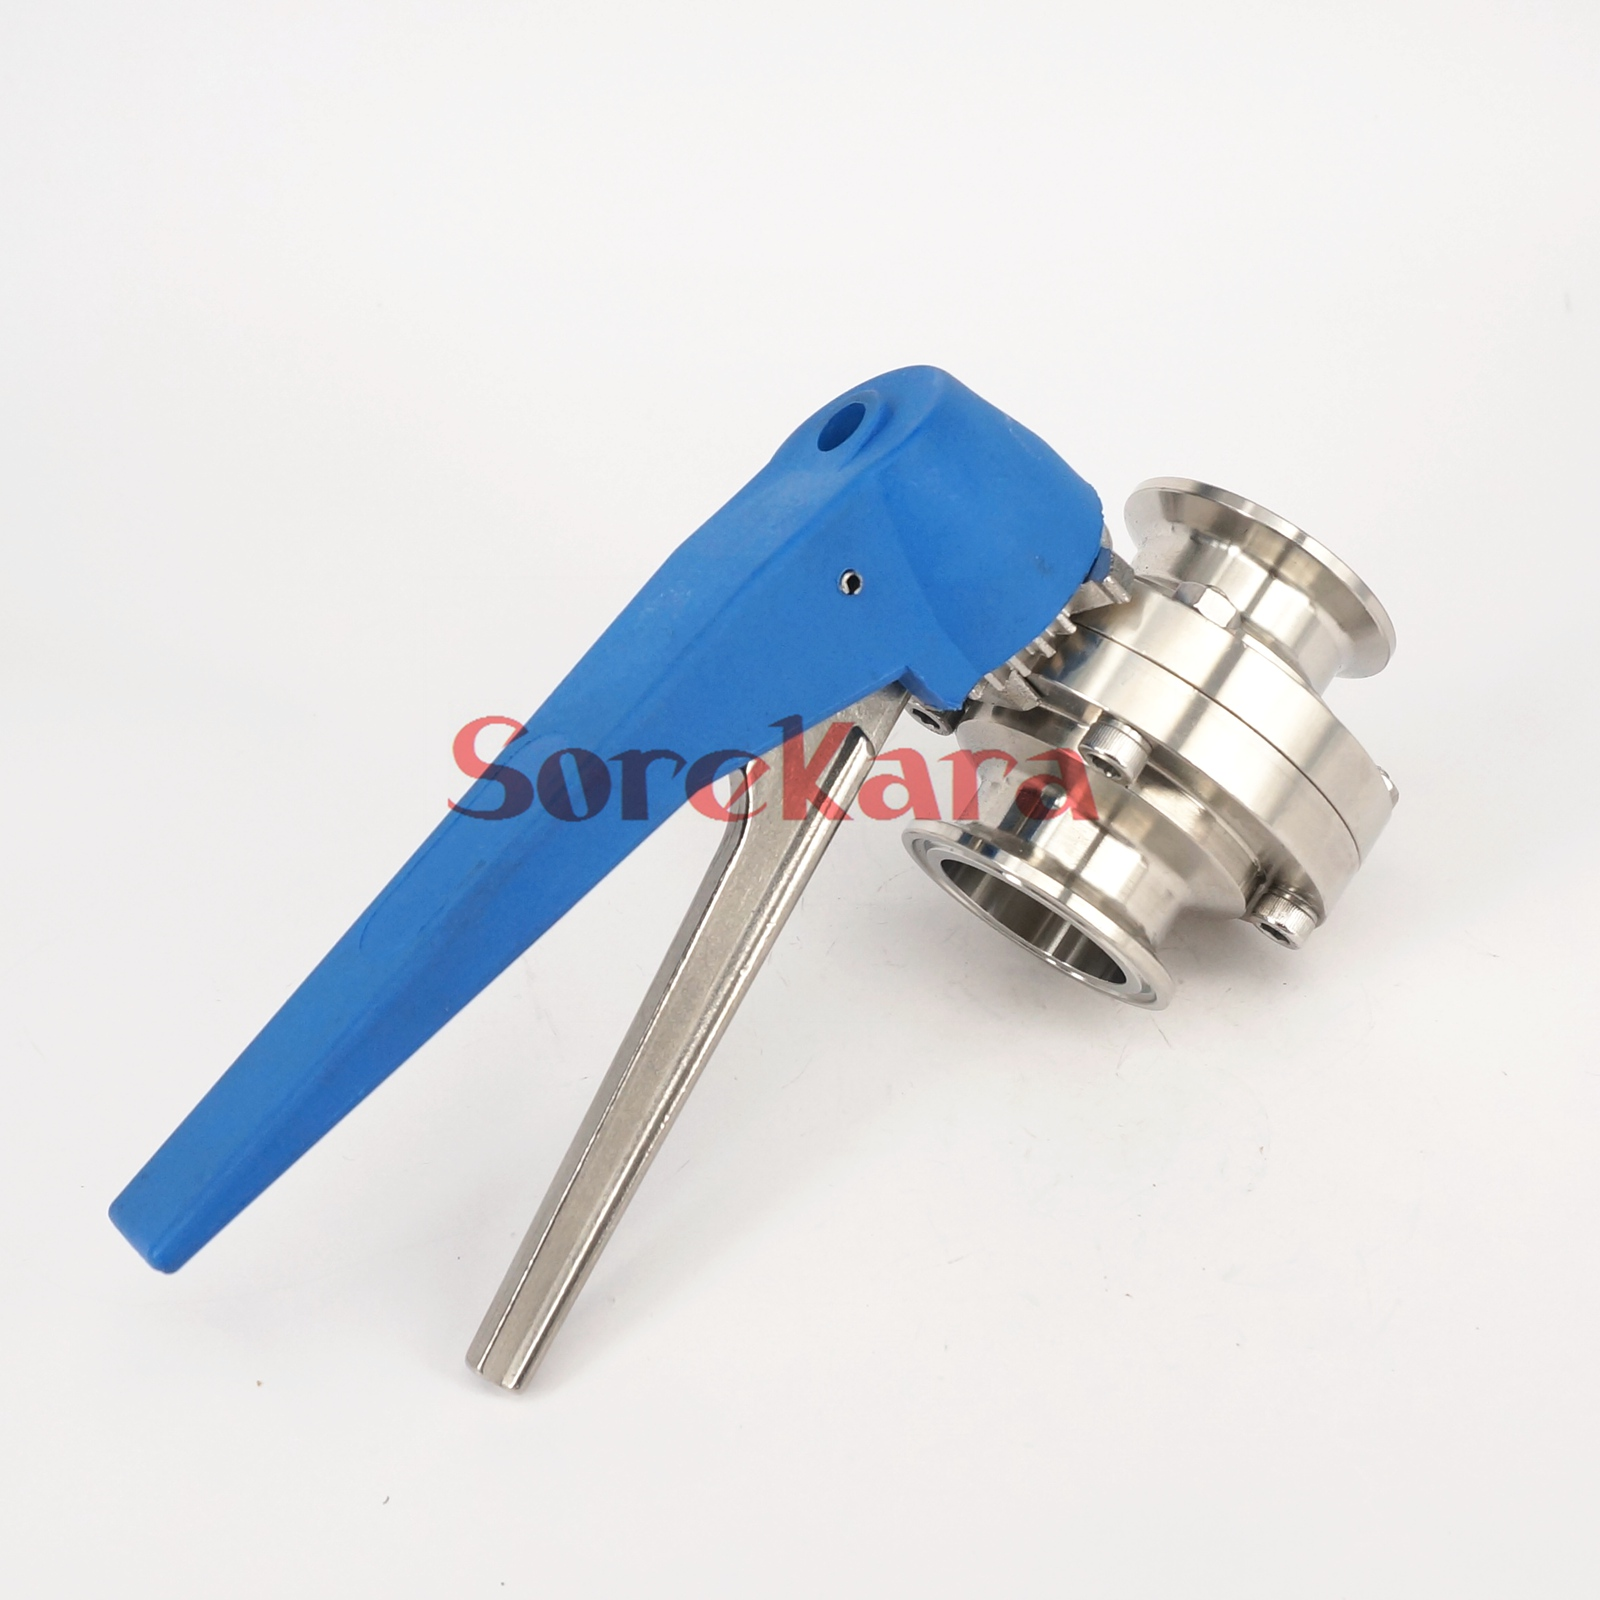 1 1 2 38mm SS304 Stainless Steel Sanitary 1 5 Tri Clamp Butterfly Valve Squeeze Trigger